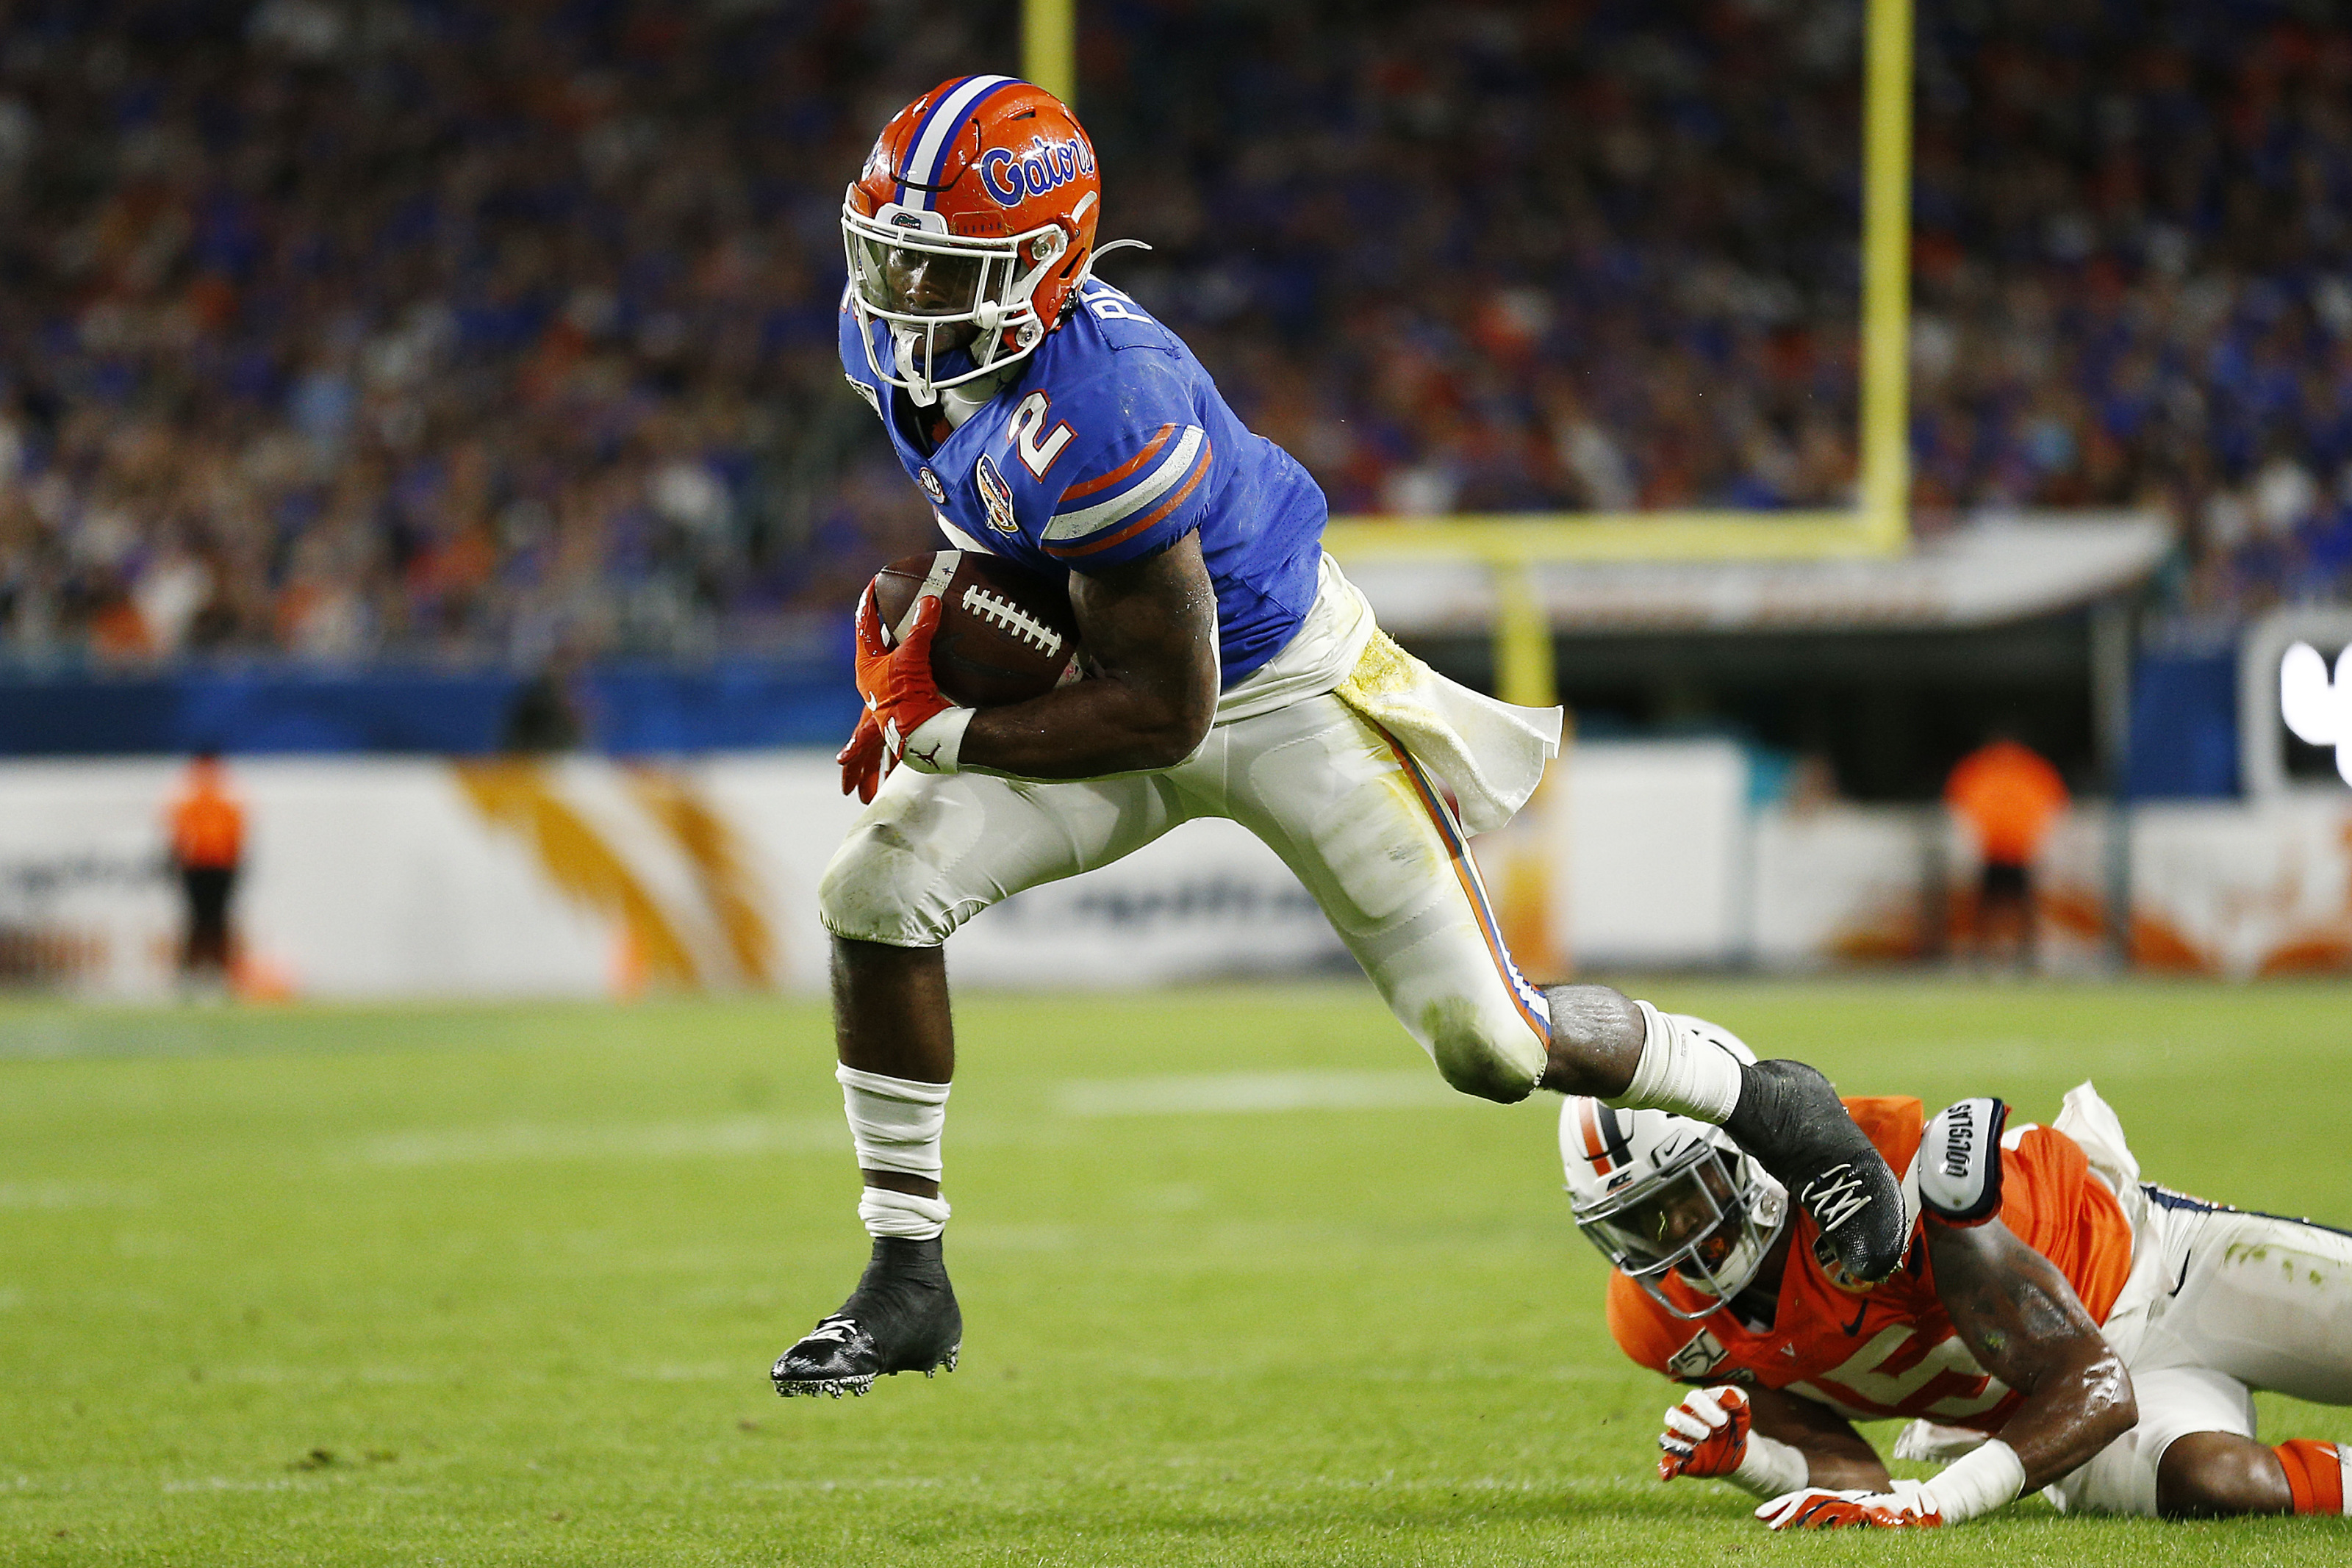 Florida Football Could 5 Star Rb Zach Evans Pick The Gators Dixon also updates where the tigers stand in the. https hailfloridahail com 2020 03 03 florida football 5 star rb zach evans pick gators